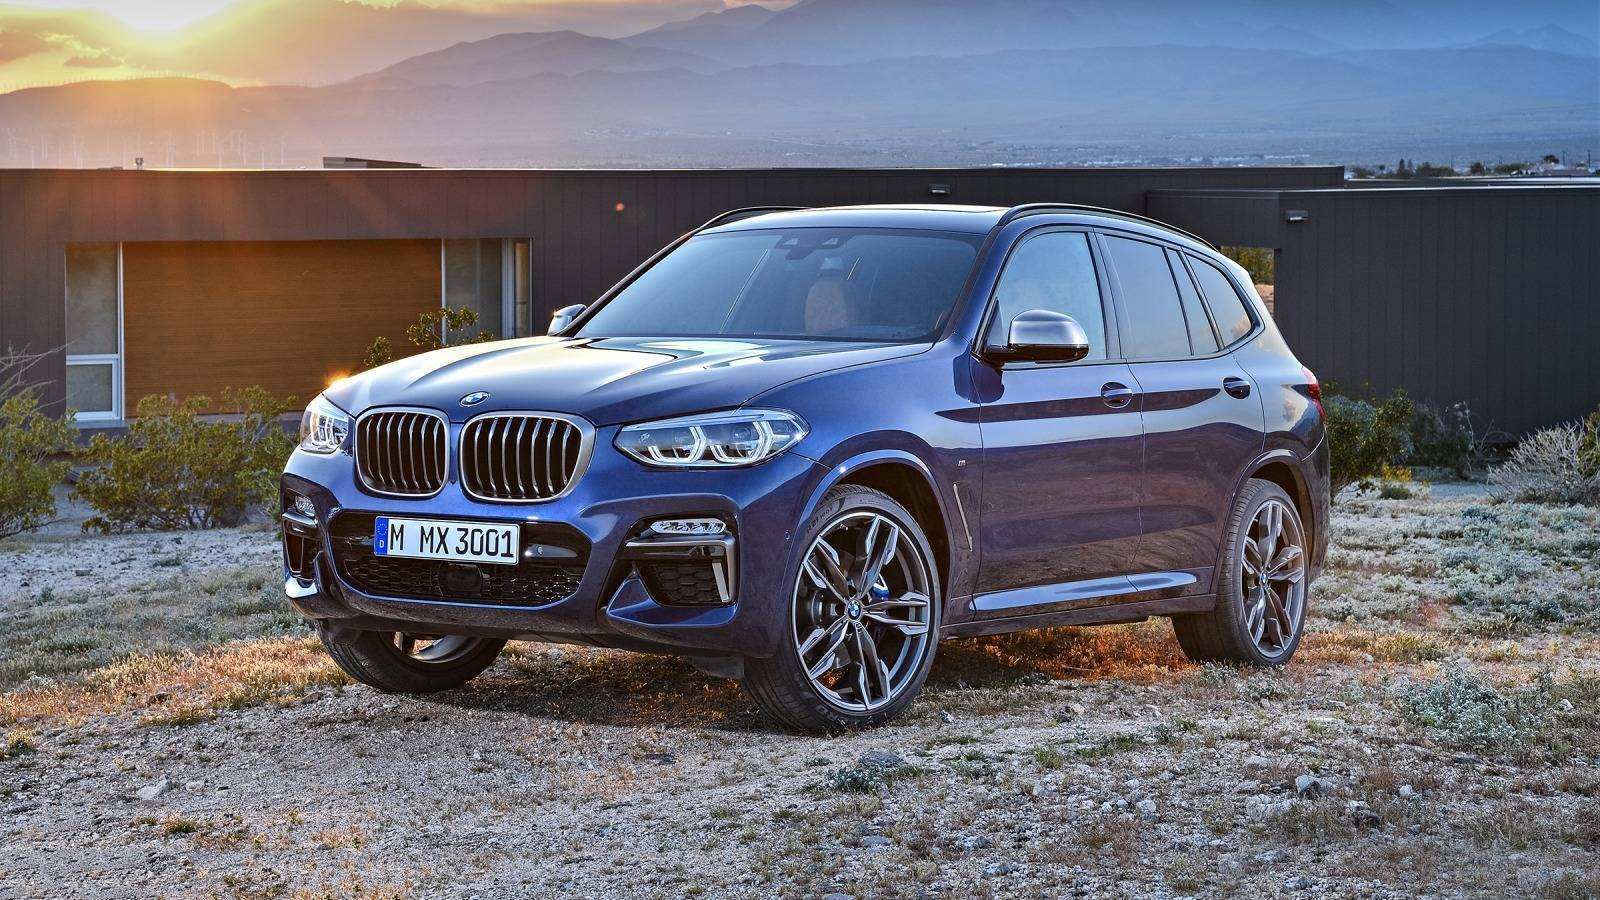 82 Concept of 2019 Bmw X3 Release Date Photos with 2019 Bmw X3 Release Date